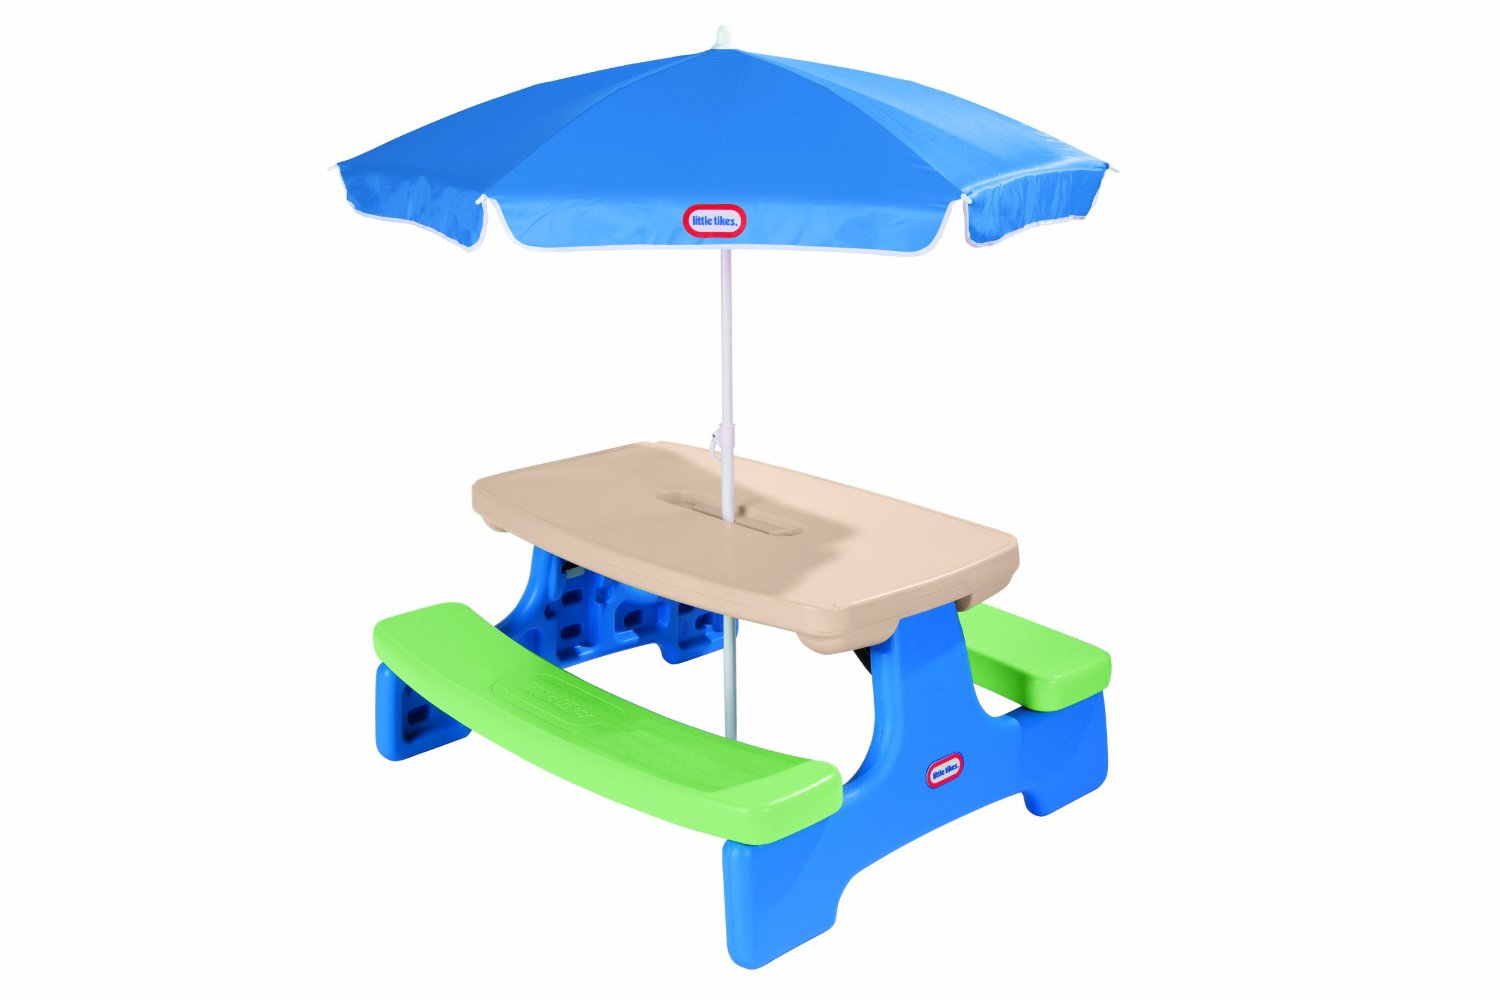 Little Tikes Easy Store Picnic Table with Umbrella Only $60! (Reg. $90!)